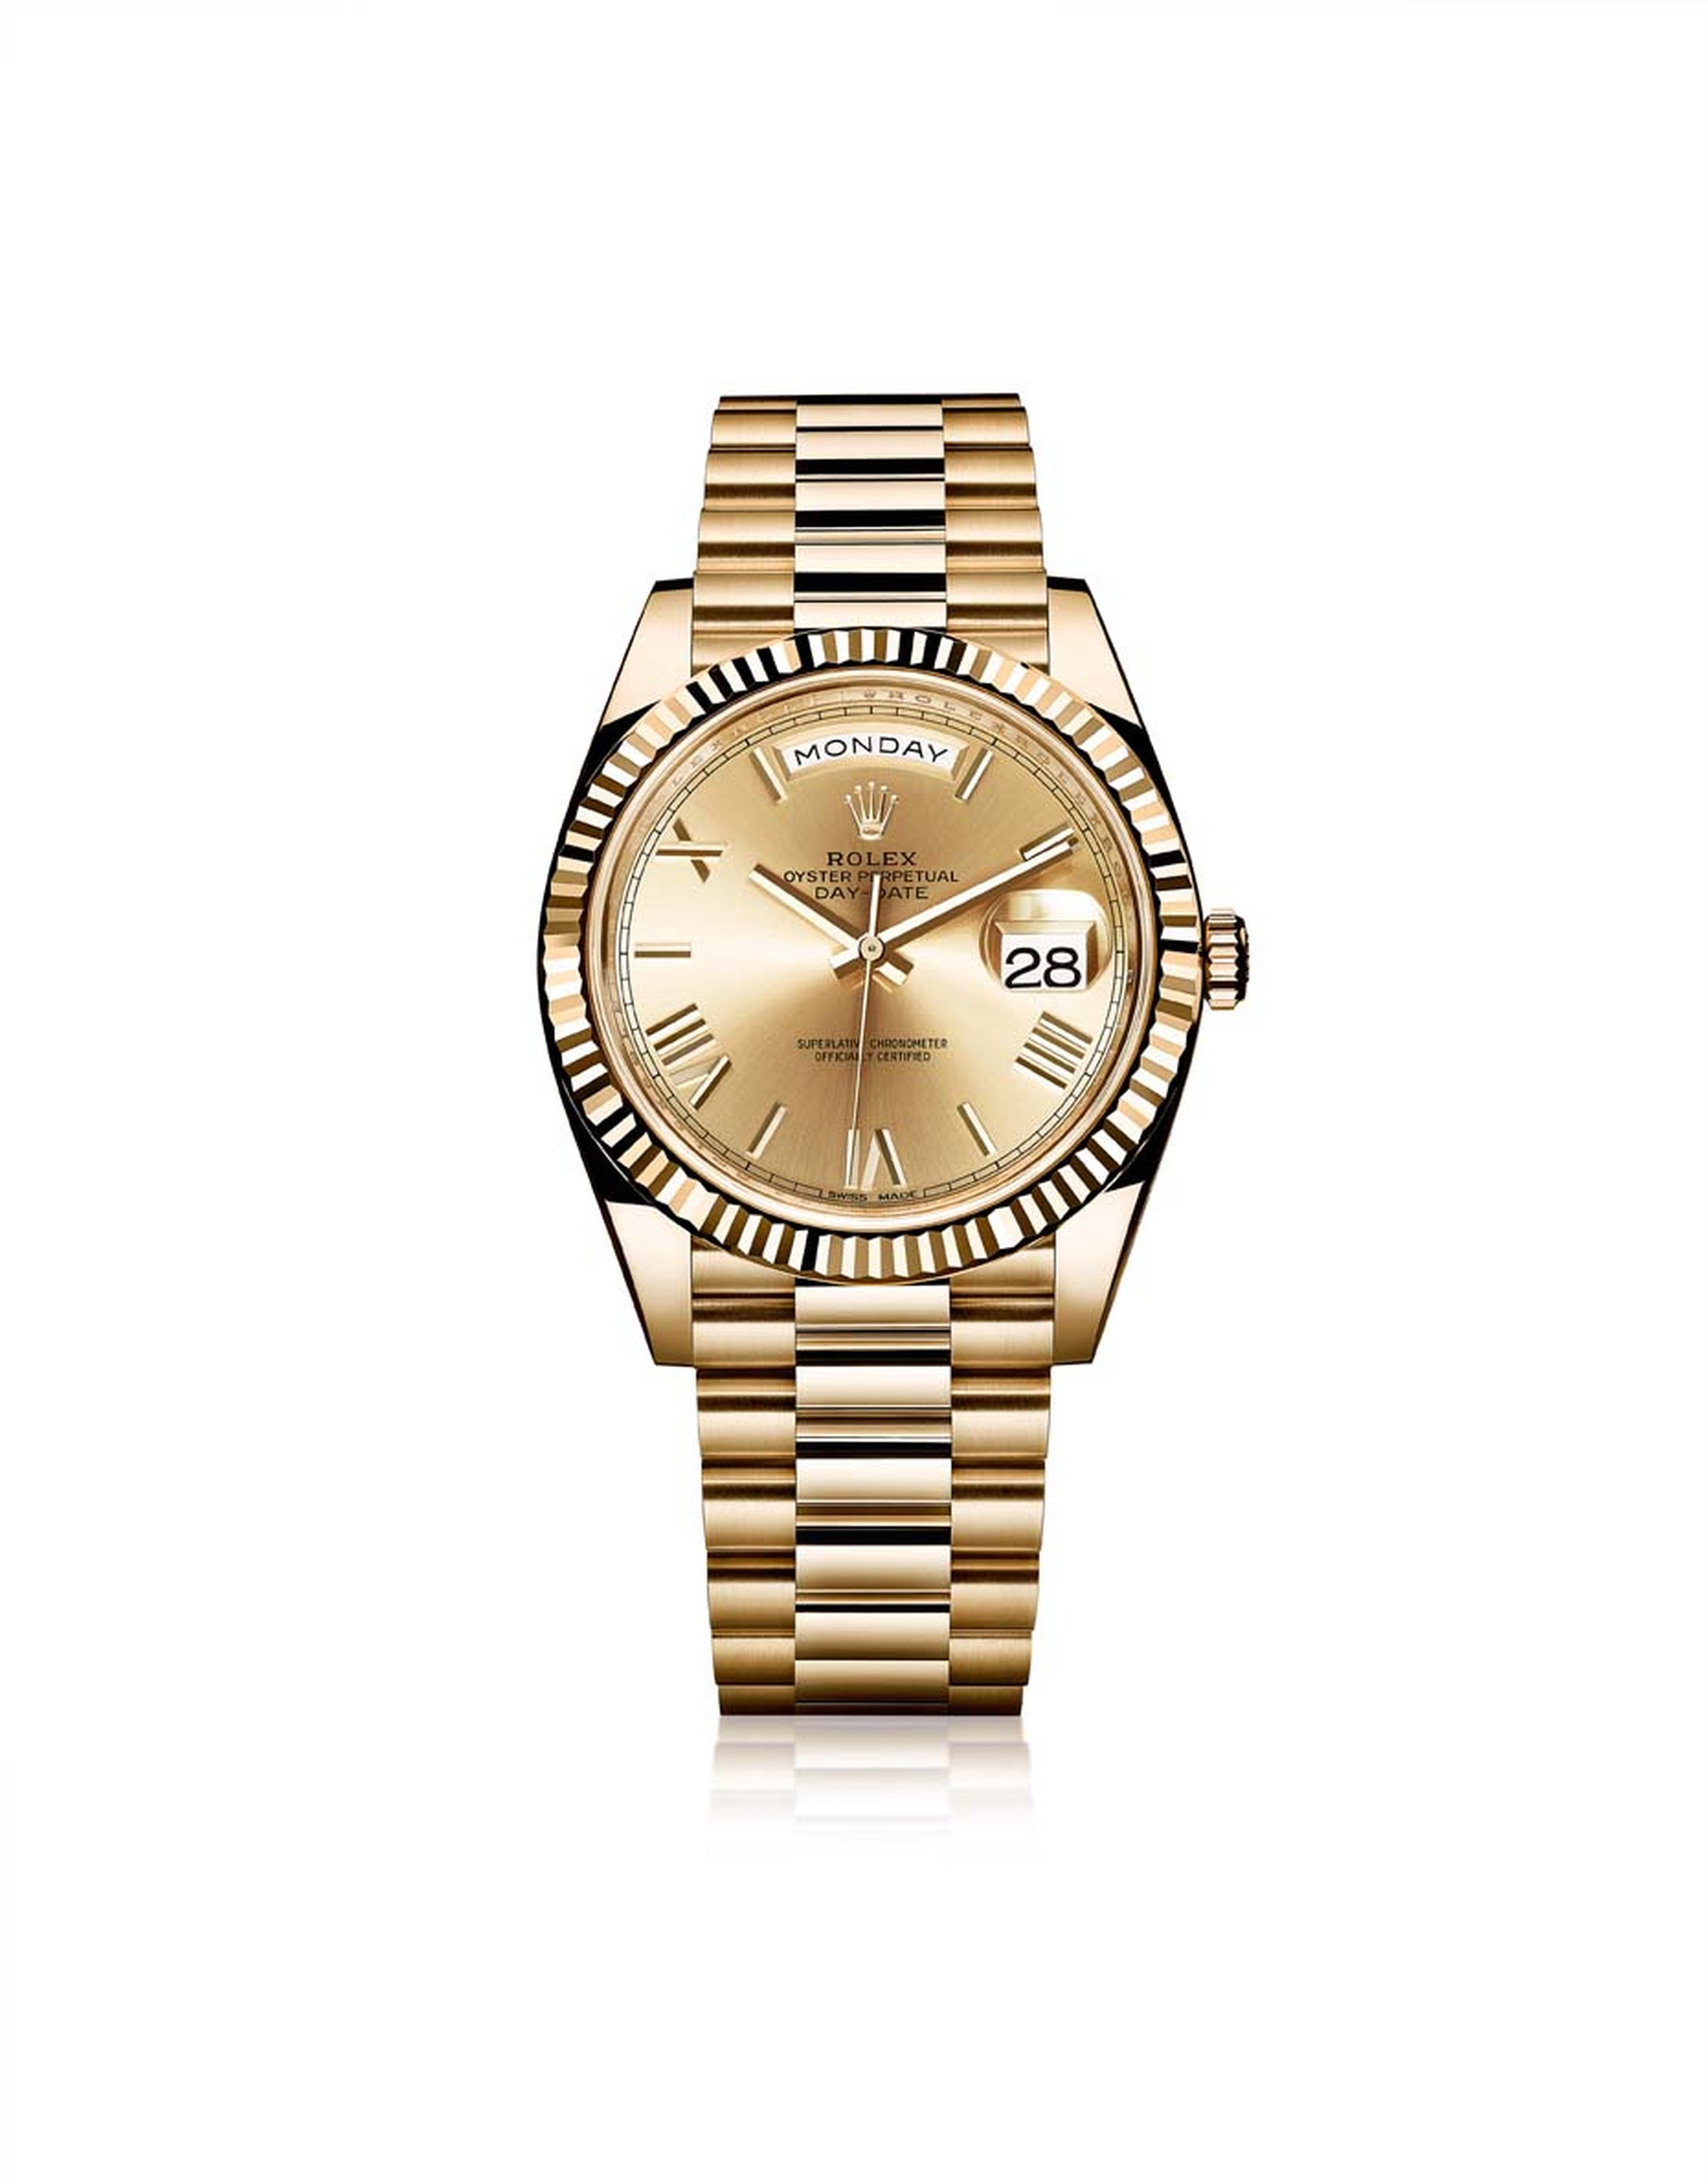 Rolex Oyster Perpetual Day-Date men's watch in a 40mm yellow gold case with the iconic date and day of the week indications, lovely champagne sunray finish gold dial and bevelled Roman numerals.